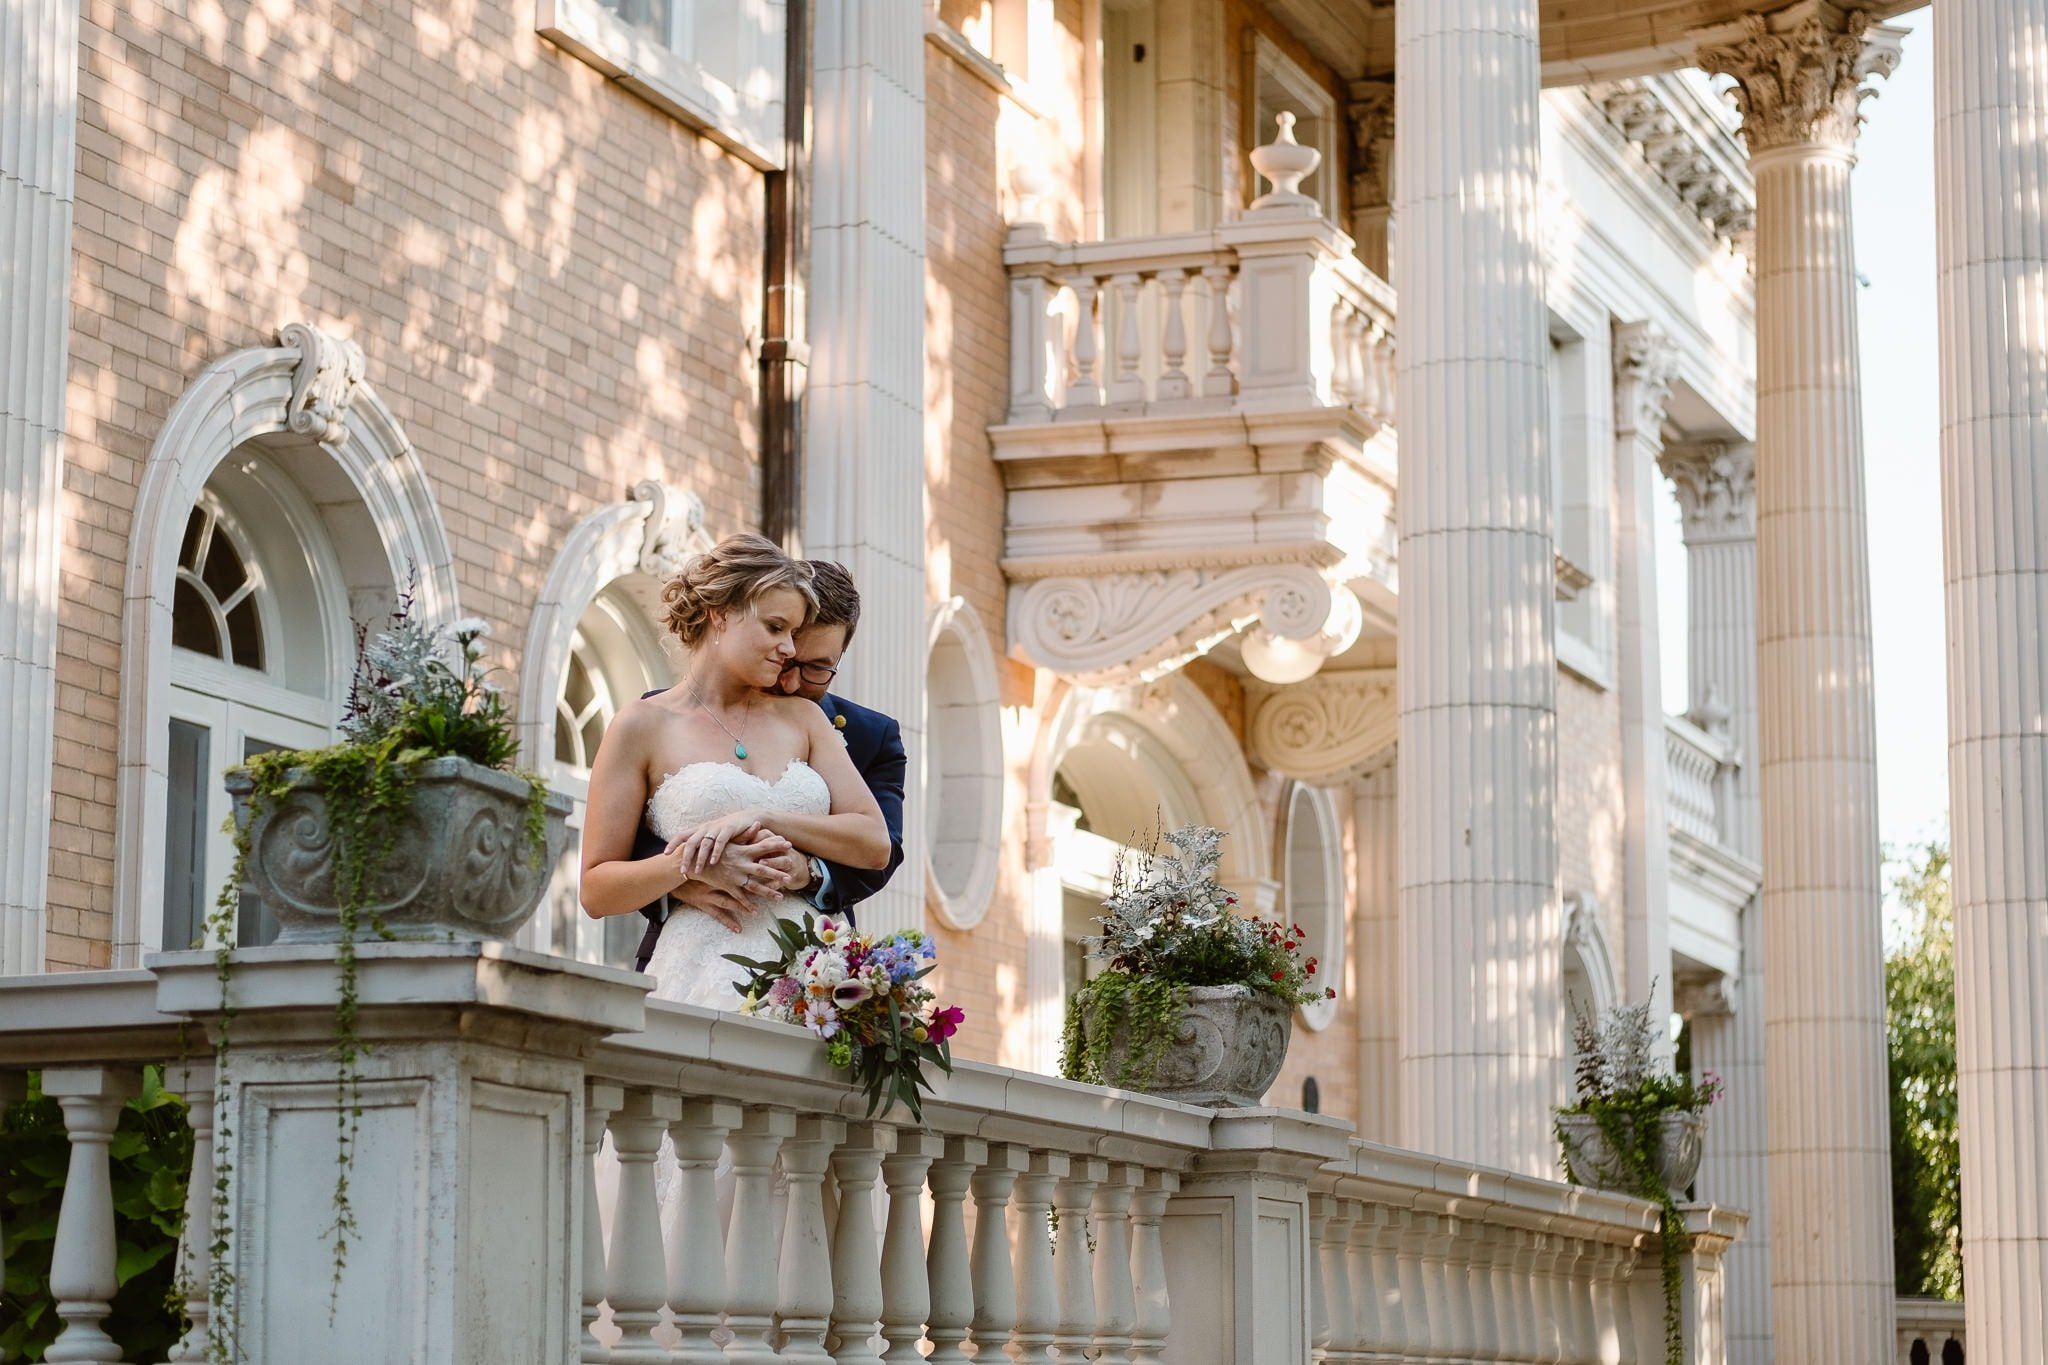 Grant Humphreys Mansion Wedding Photographer, French chateau wedding, Denver wedding photographer, Colorado wedding venue, bride and groom portraits, intimate wedding